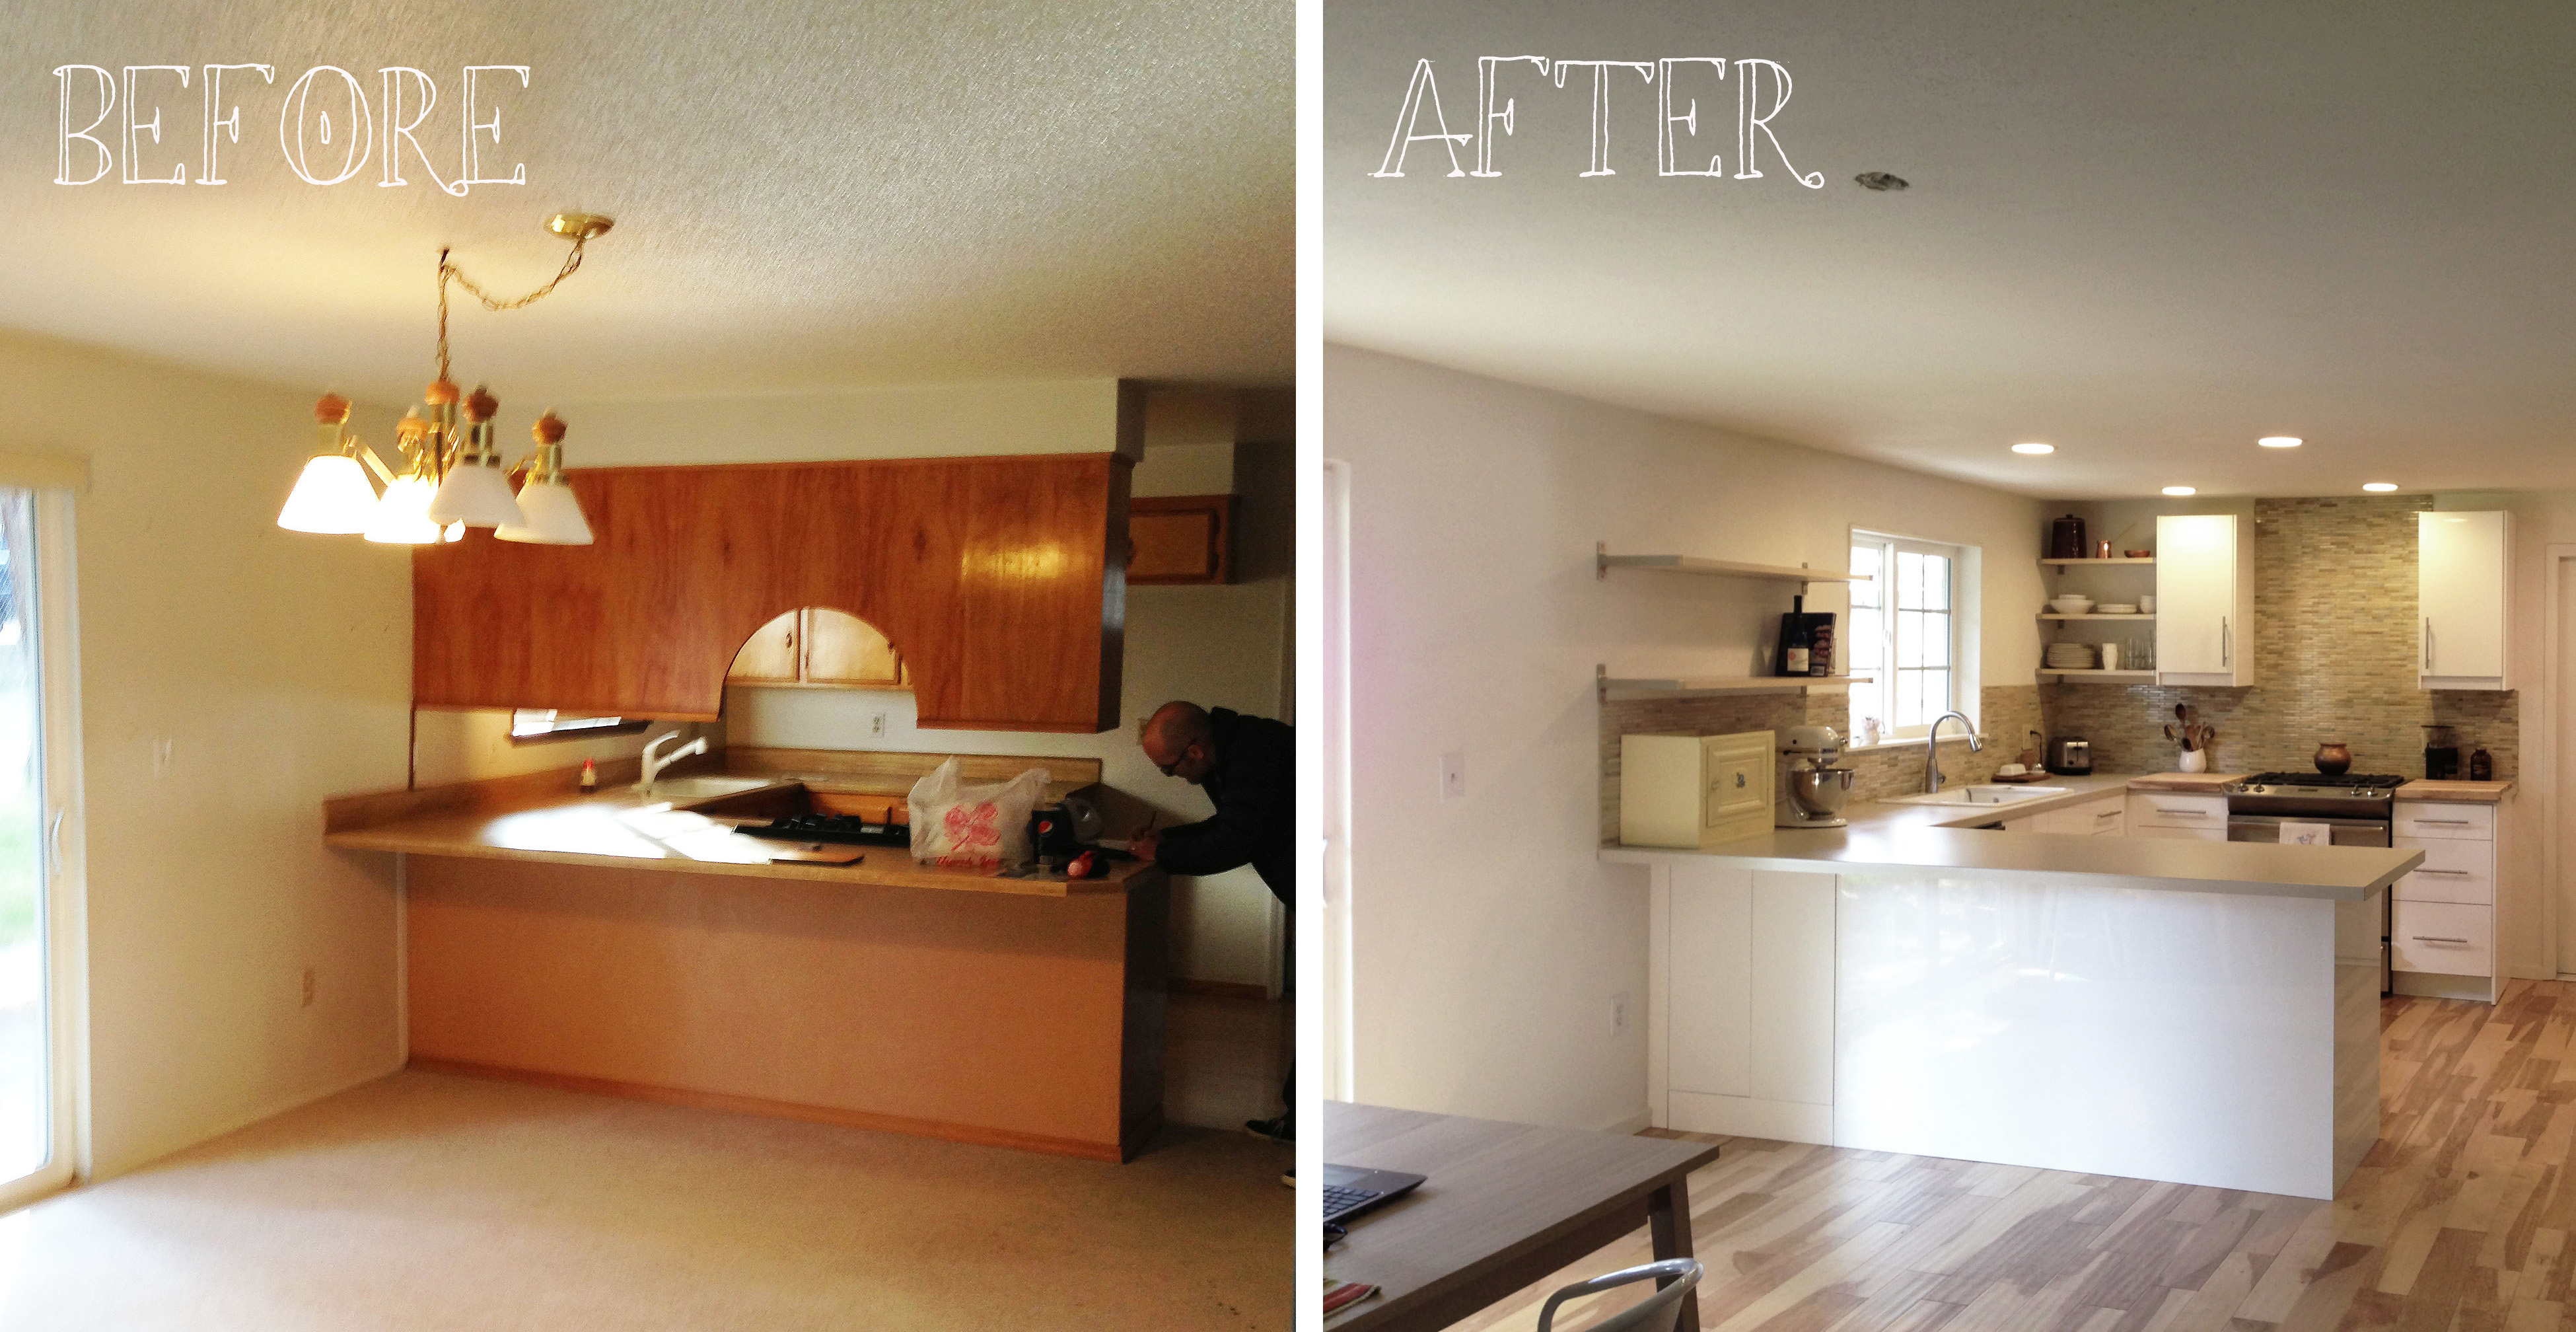 1000 images about renovations on pinterest before after for Kitchen improvements